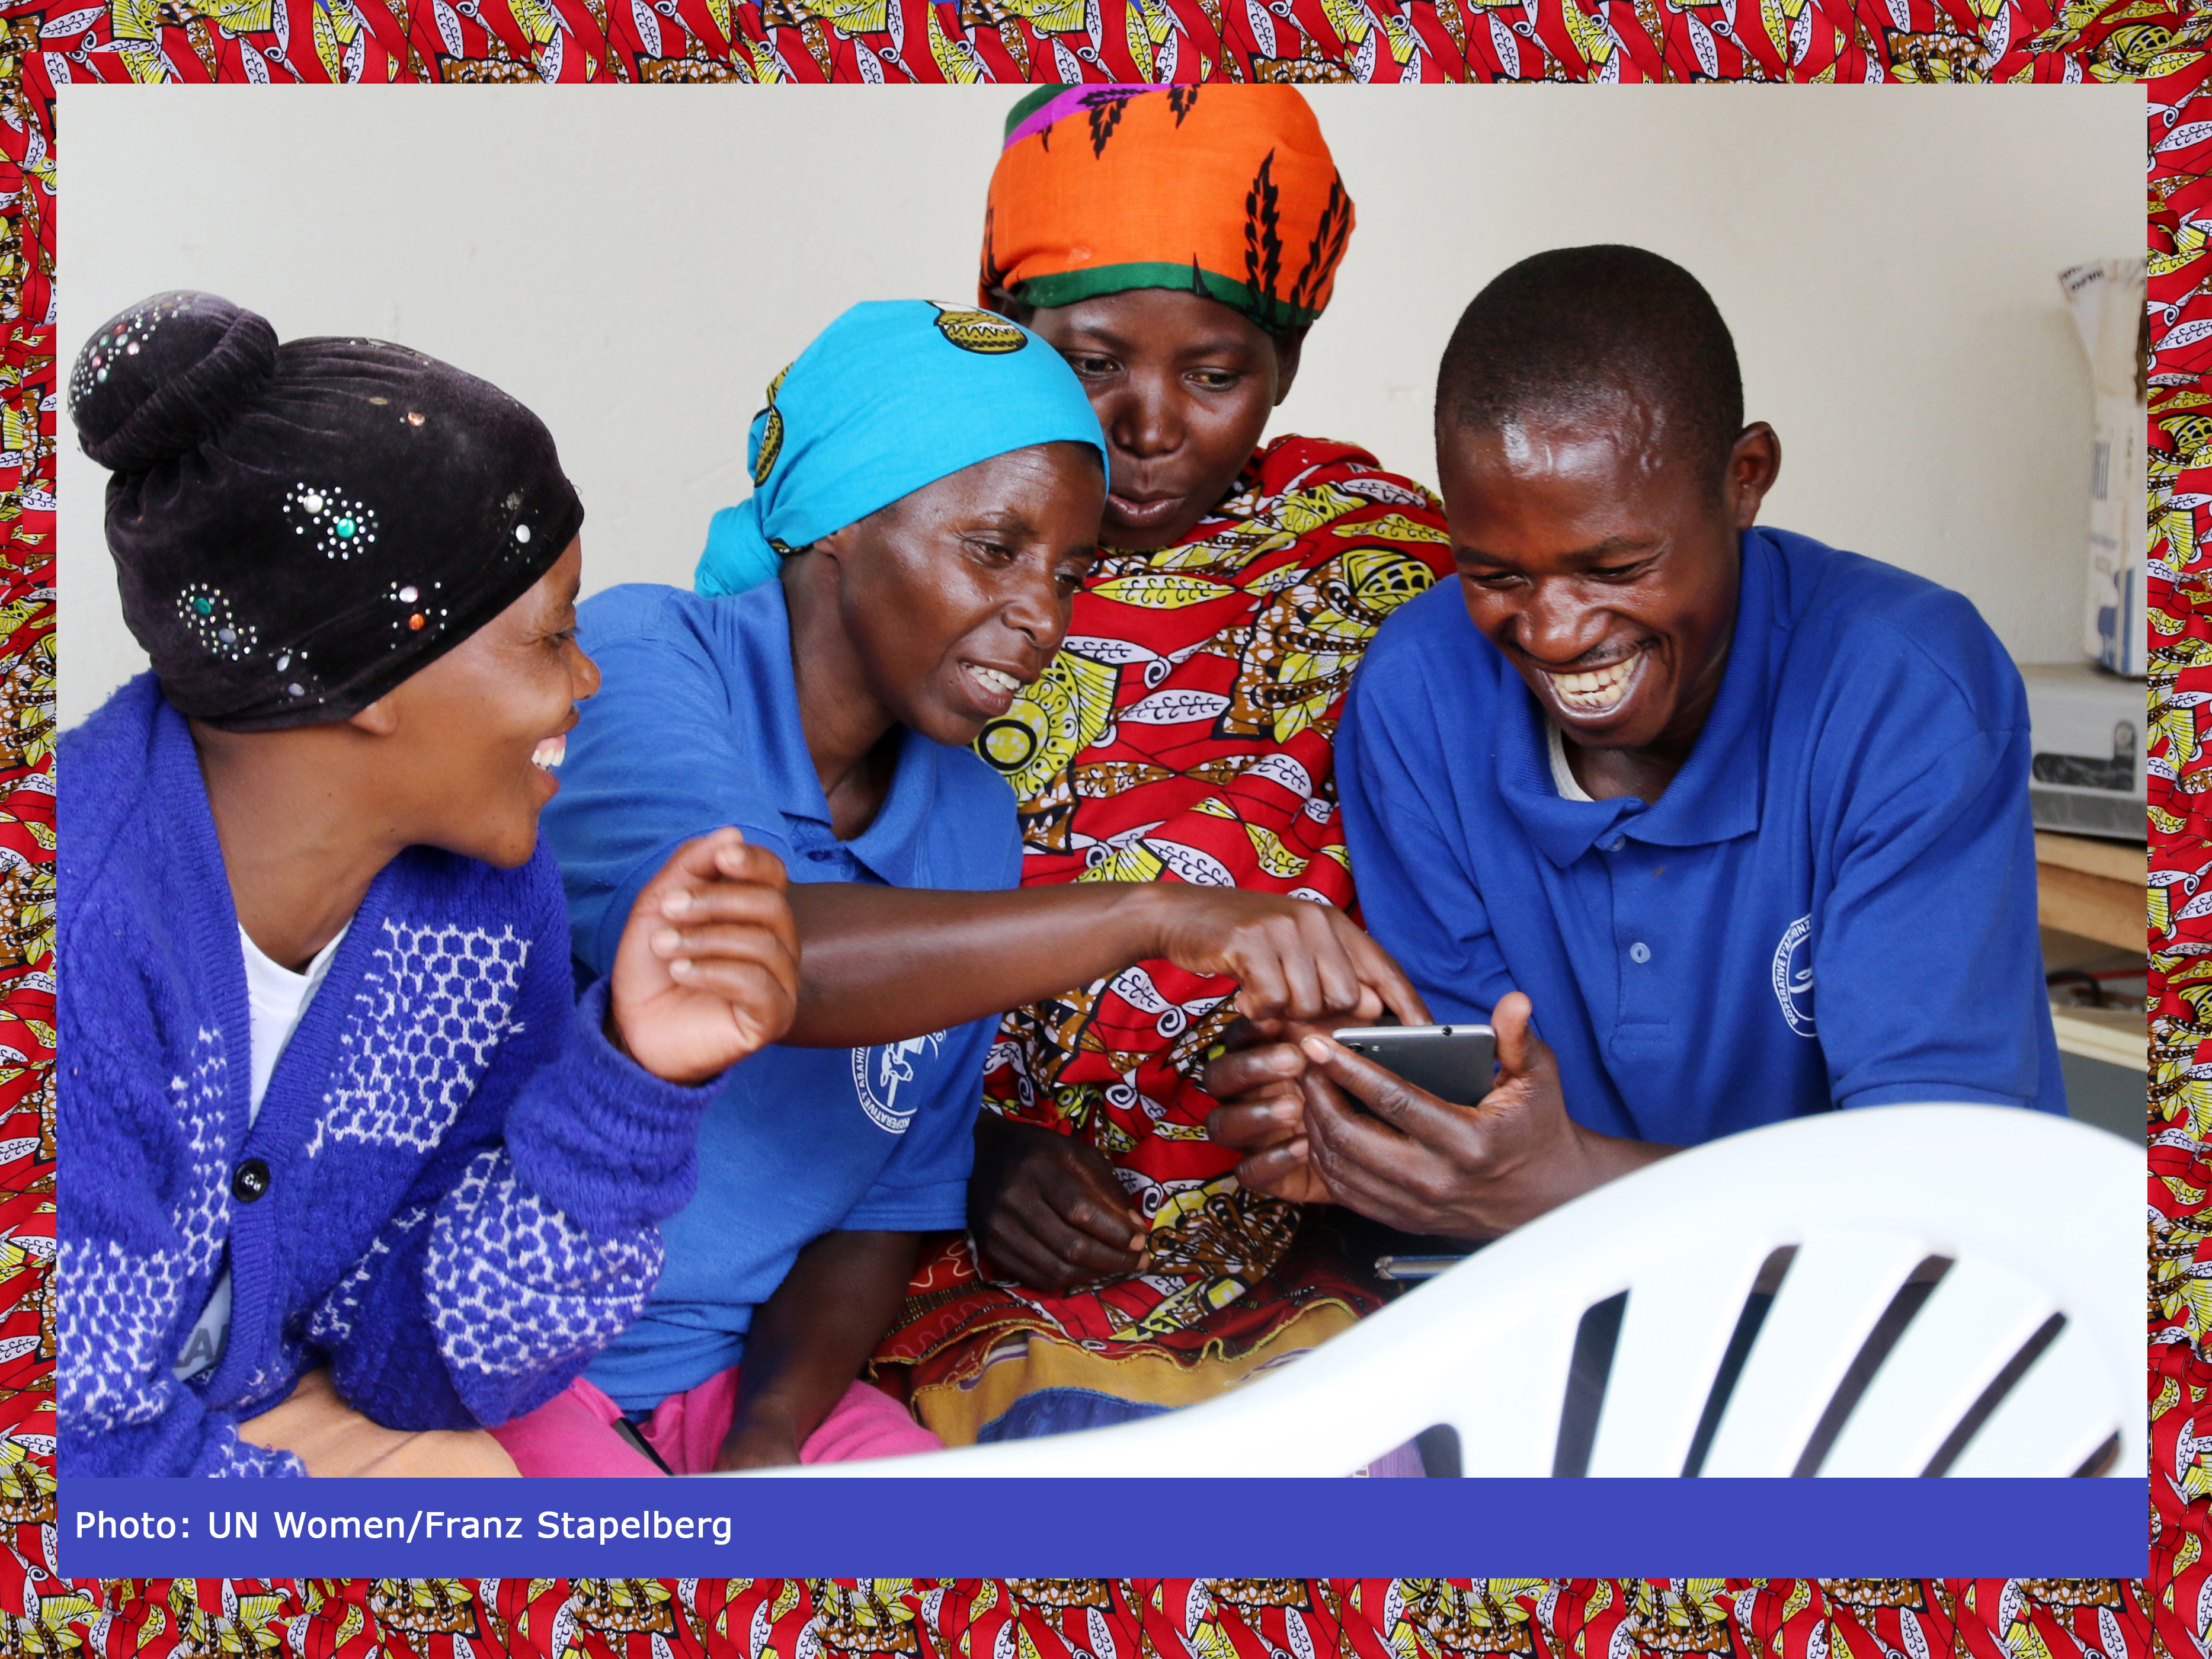 Women farmers learning to use new tool and technology